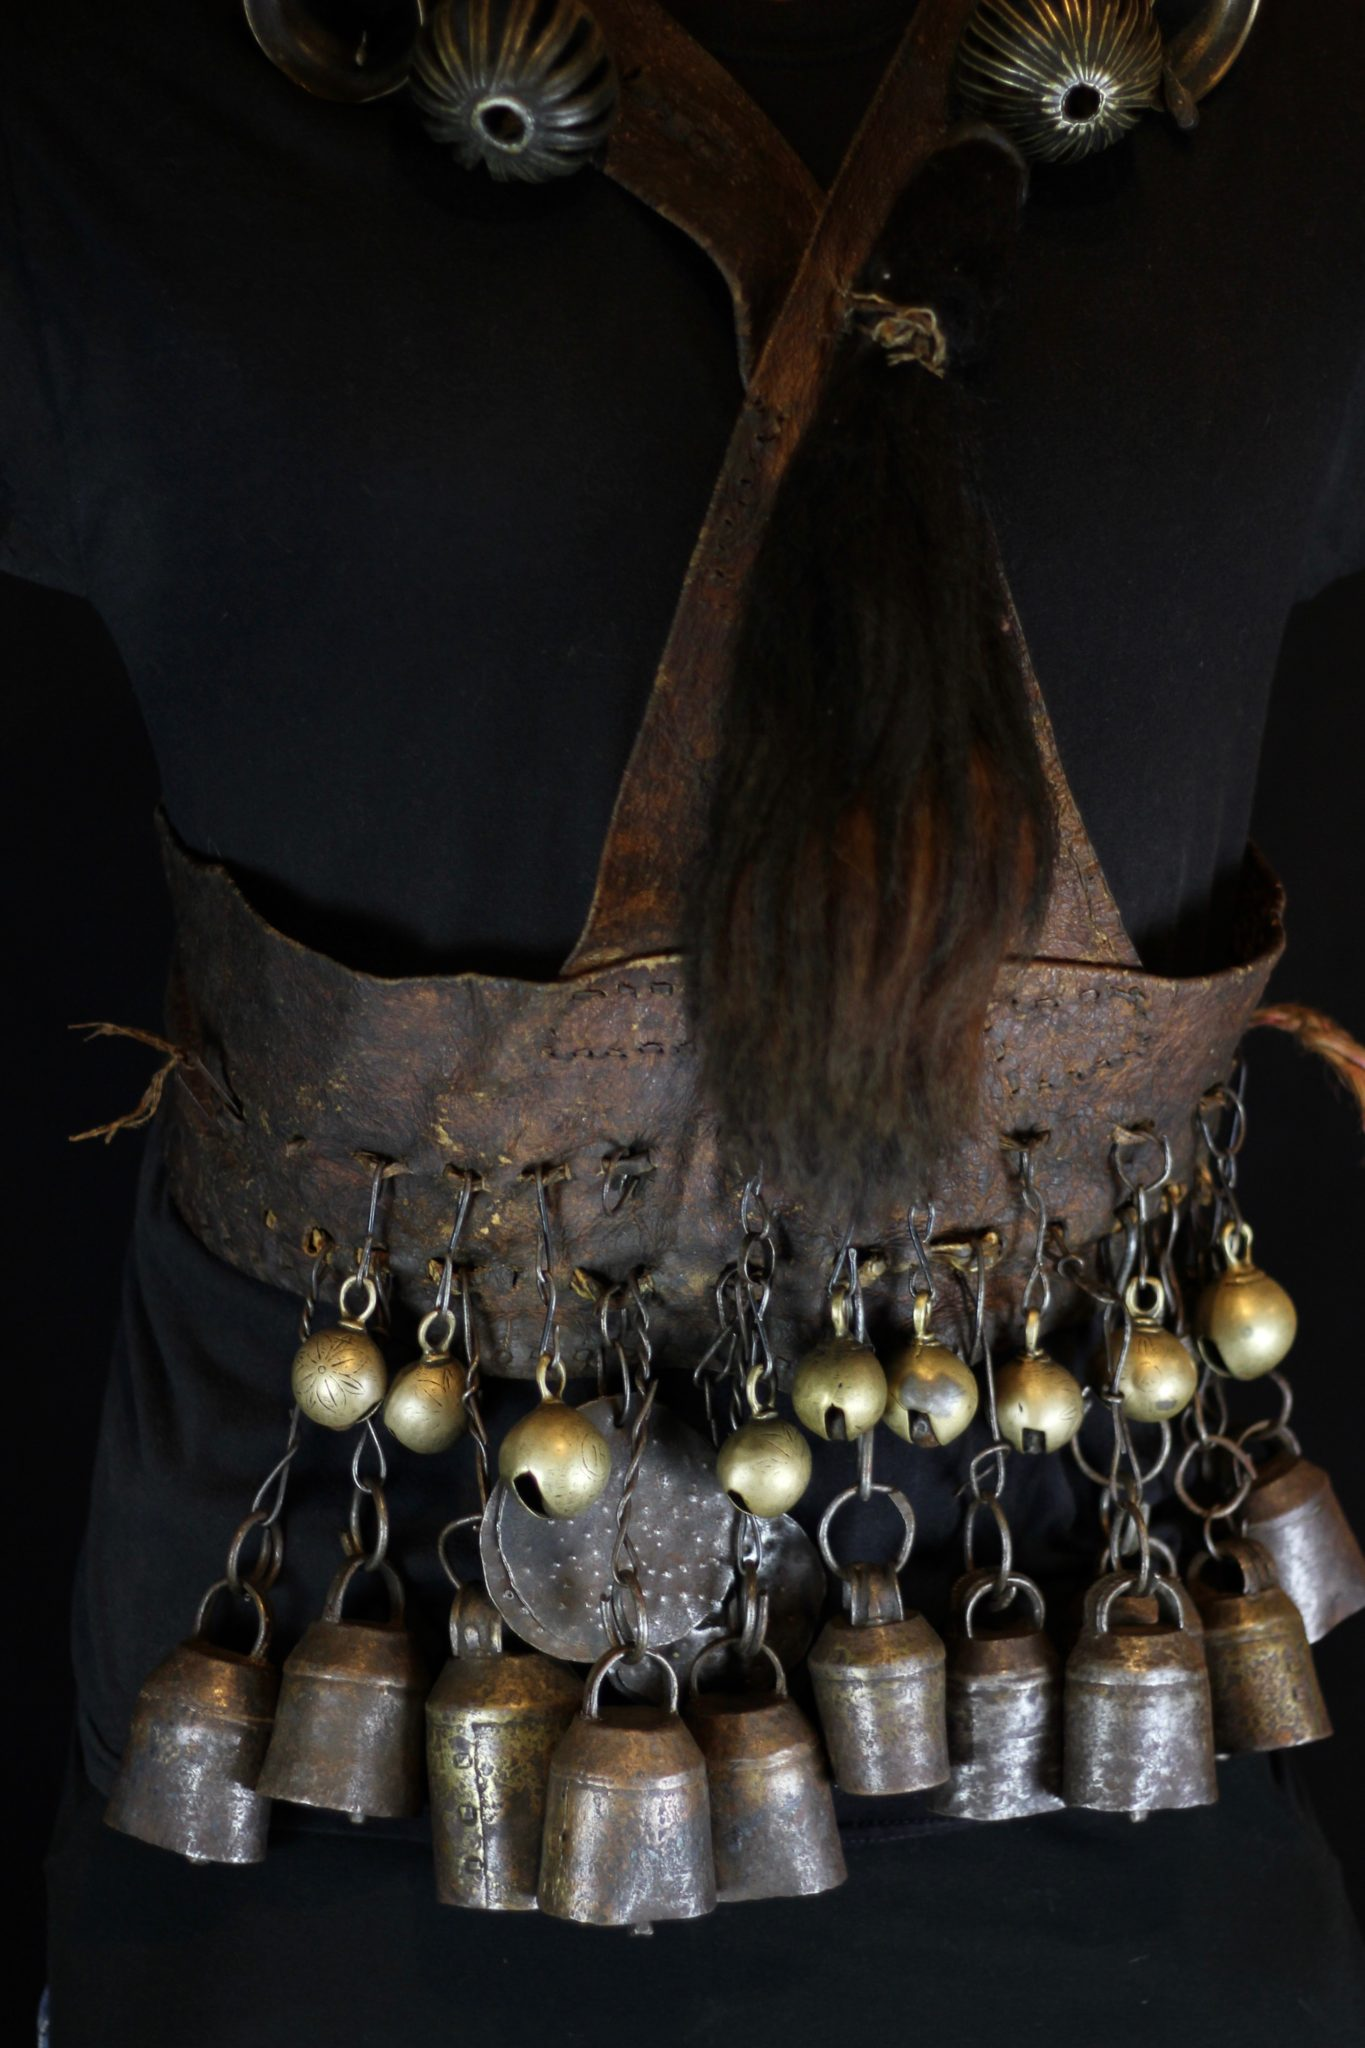 "This large belt is an essential part of all Nepalese shaman costumes. The belt/apron is heavy and loud with all its many parts: hide leather, iron chain and hand crafted crotal, and cylindrical bells and bangles and the brass conical bells. The yak hair and other amulets all are symbolic and spiritual tools. Used in rituals to protect shaman, villagers and the area from witches and other evil beings. (it is a waist belt with hanging bells and over the shoulder cross straps), 44"" x 33"" x 3"", $3200"